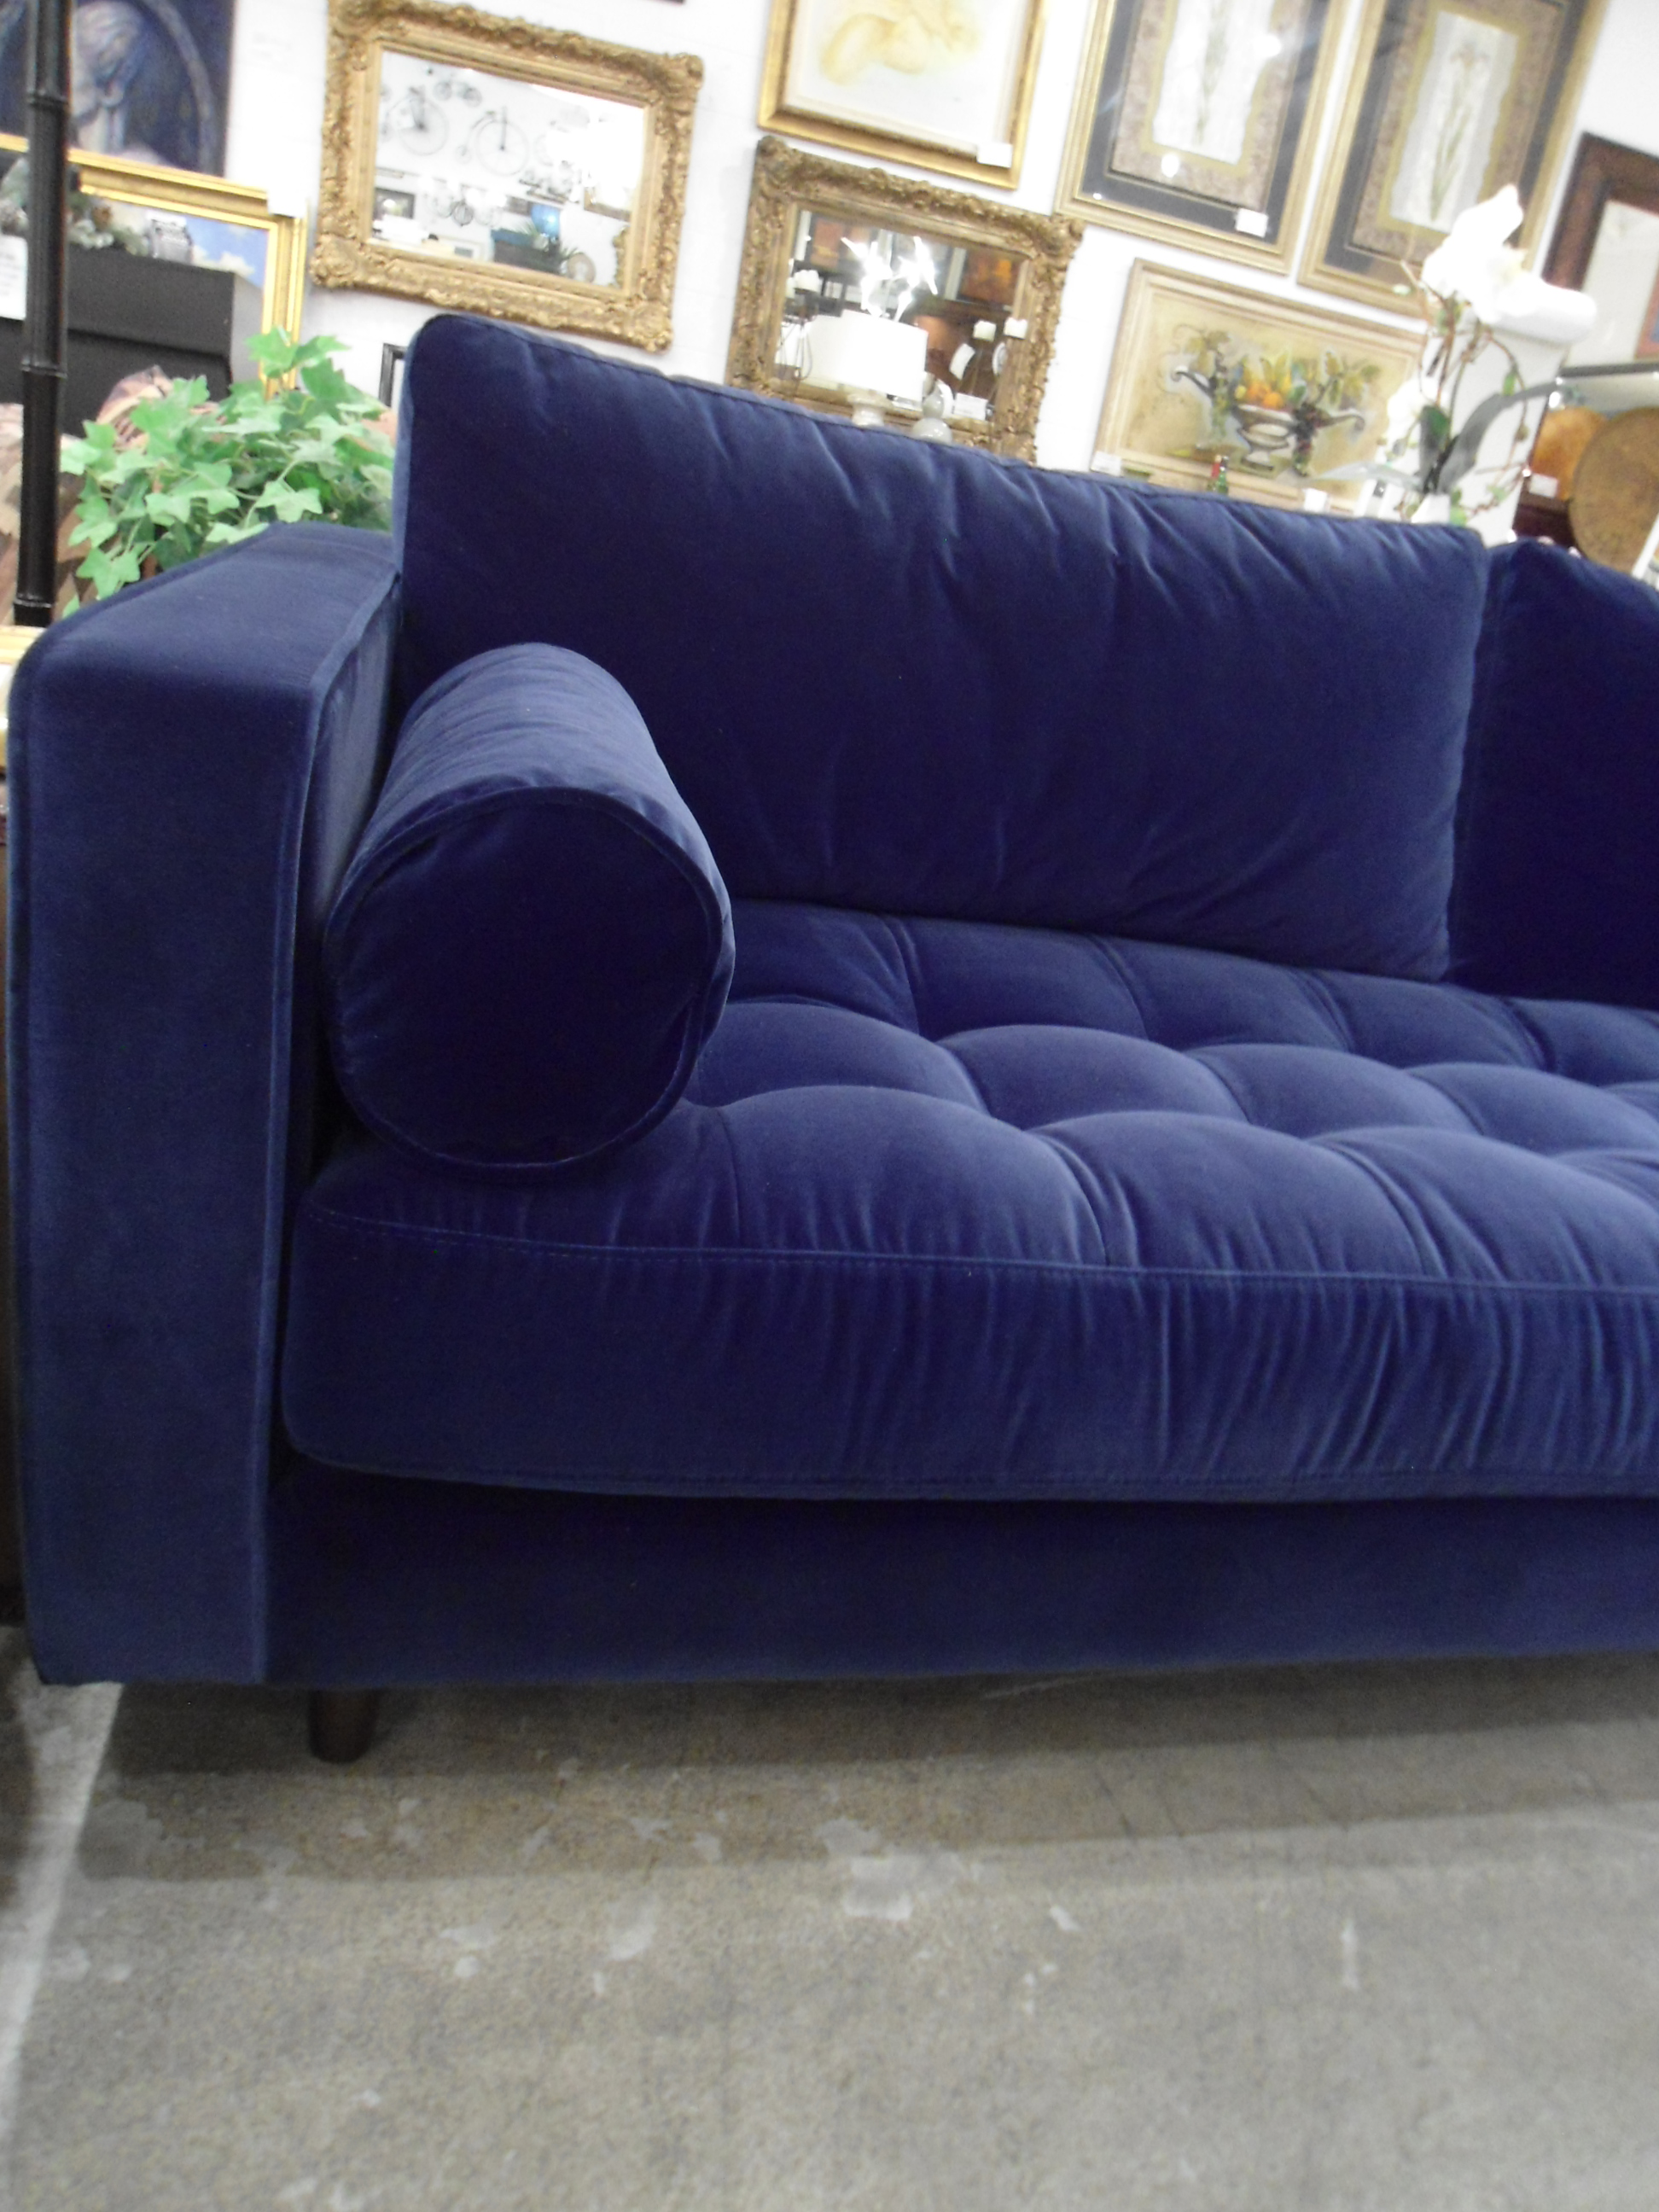 sven cascadia blue tufted sofa w bolster pillows by article chairish